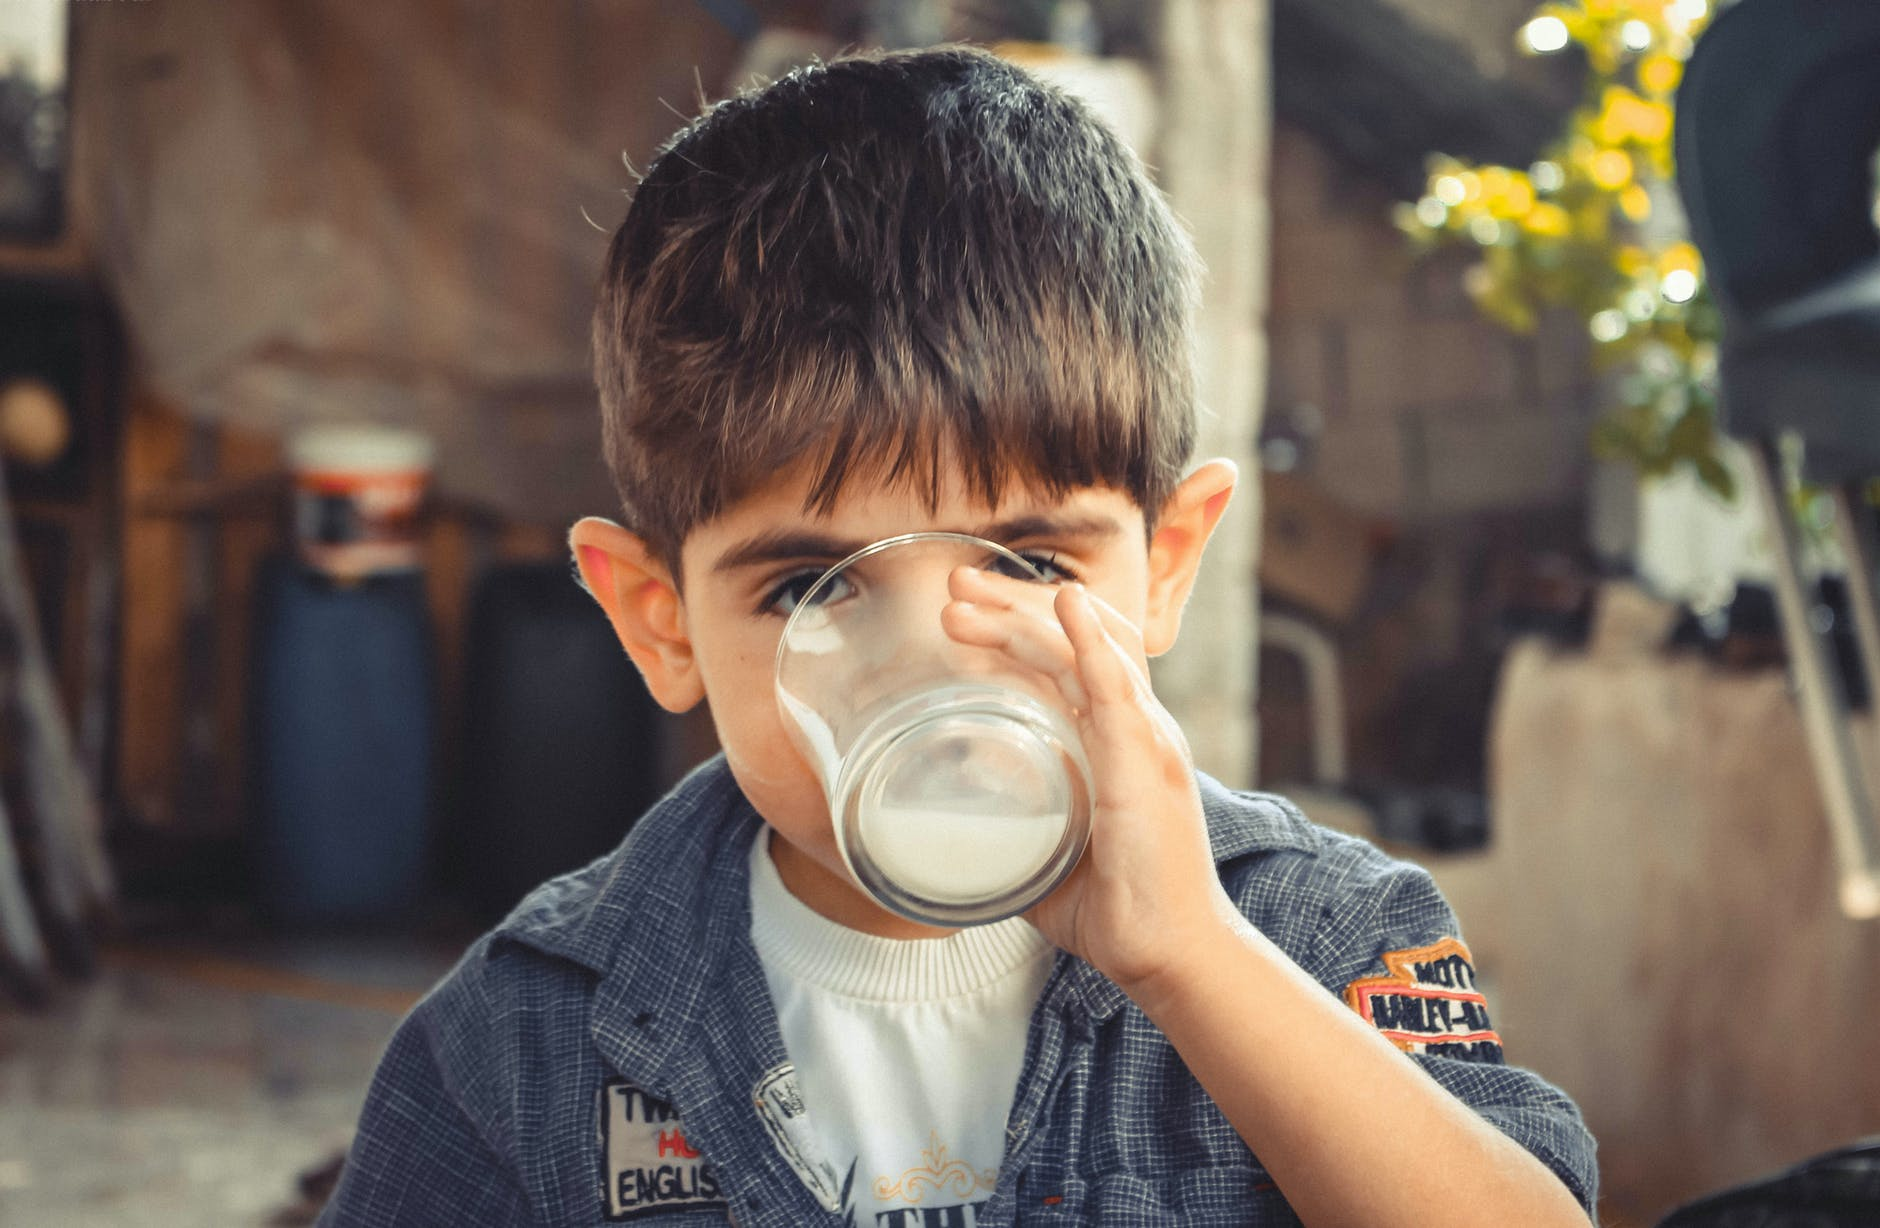 child drinking a glass of milk